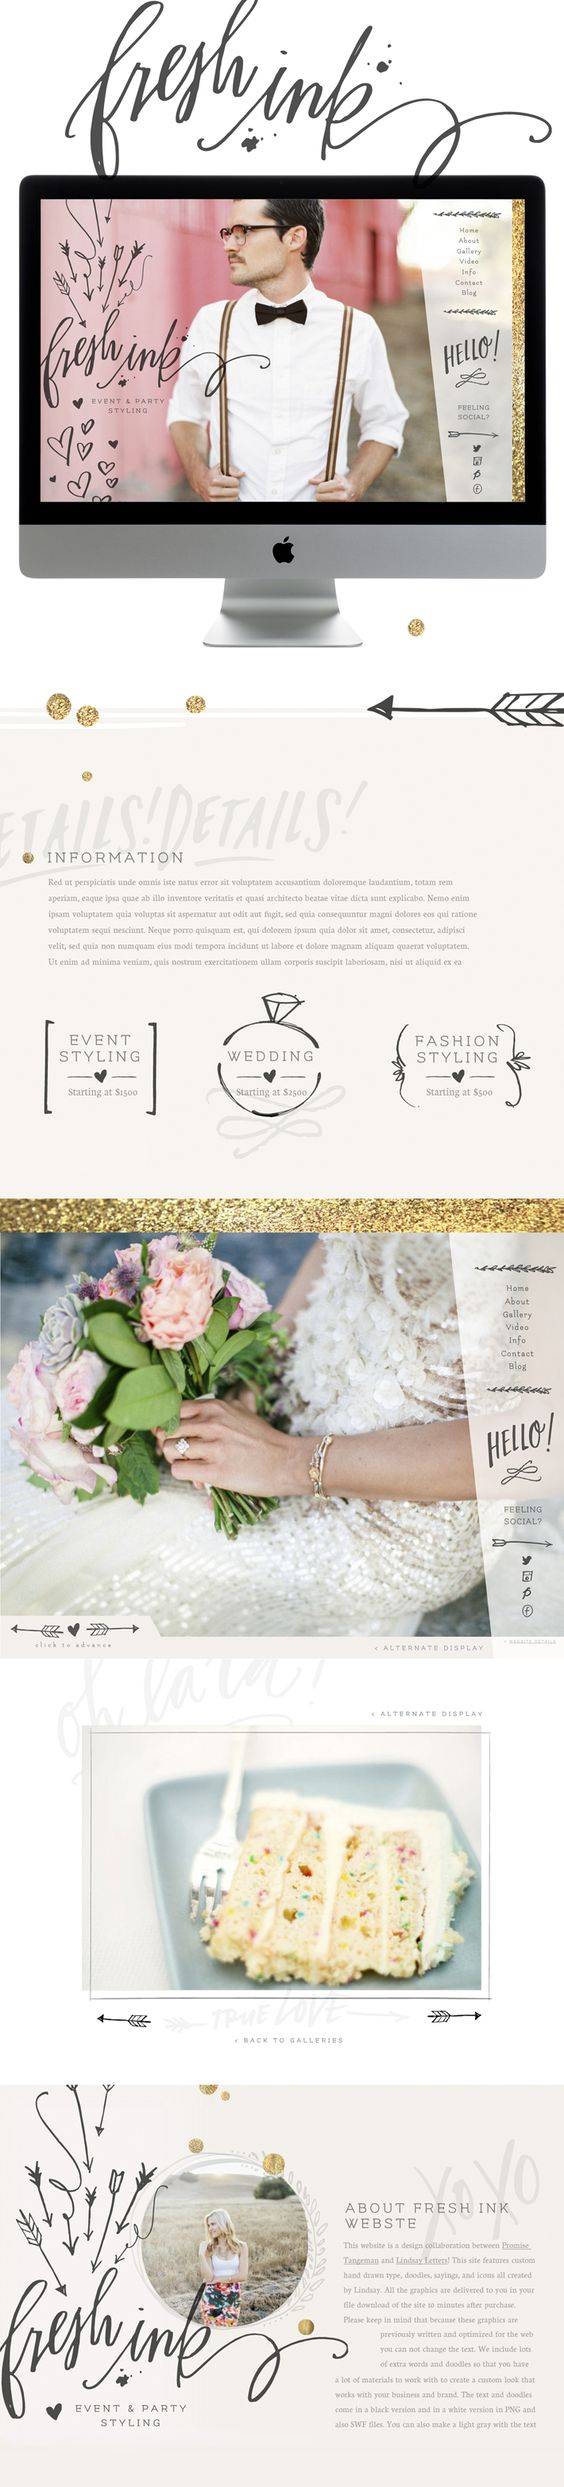 FRESH INK: sitehousedesigns.com  ||  Designed by Lindsay Letters and Promise Tangeman